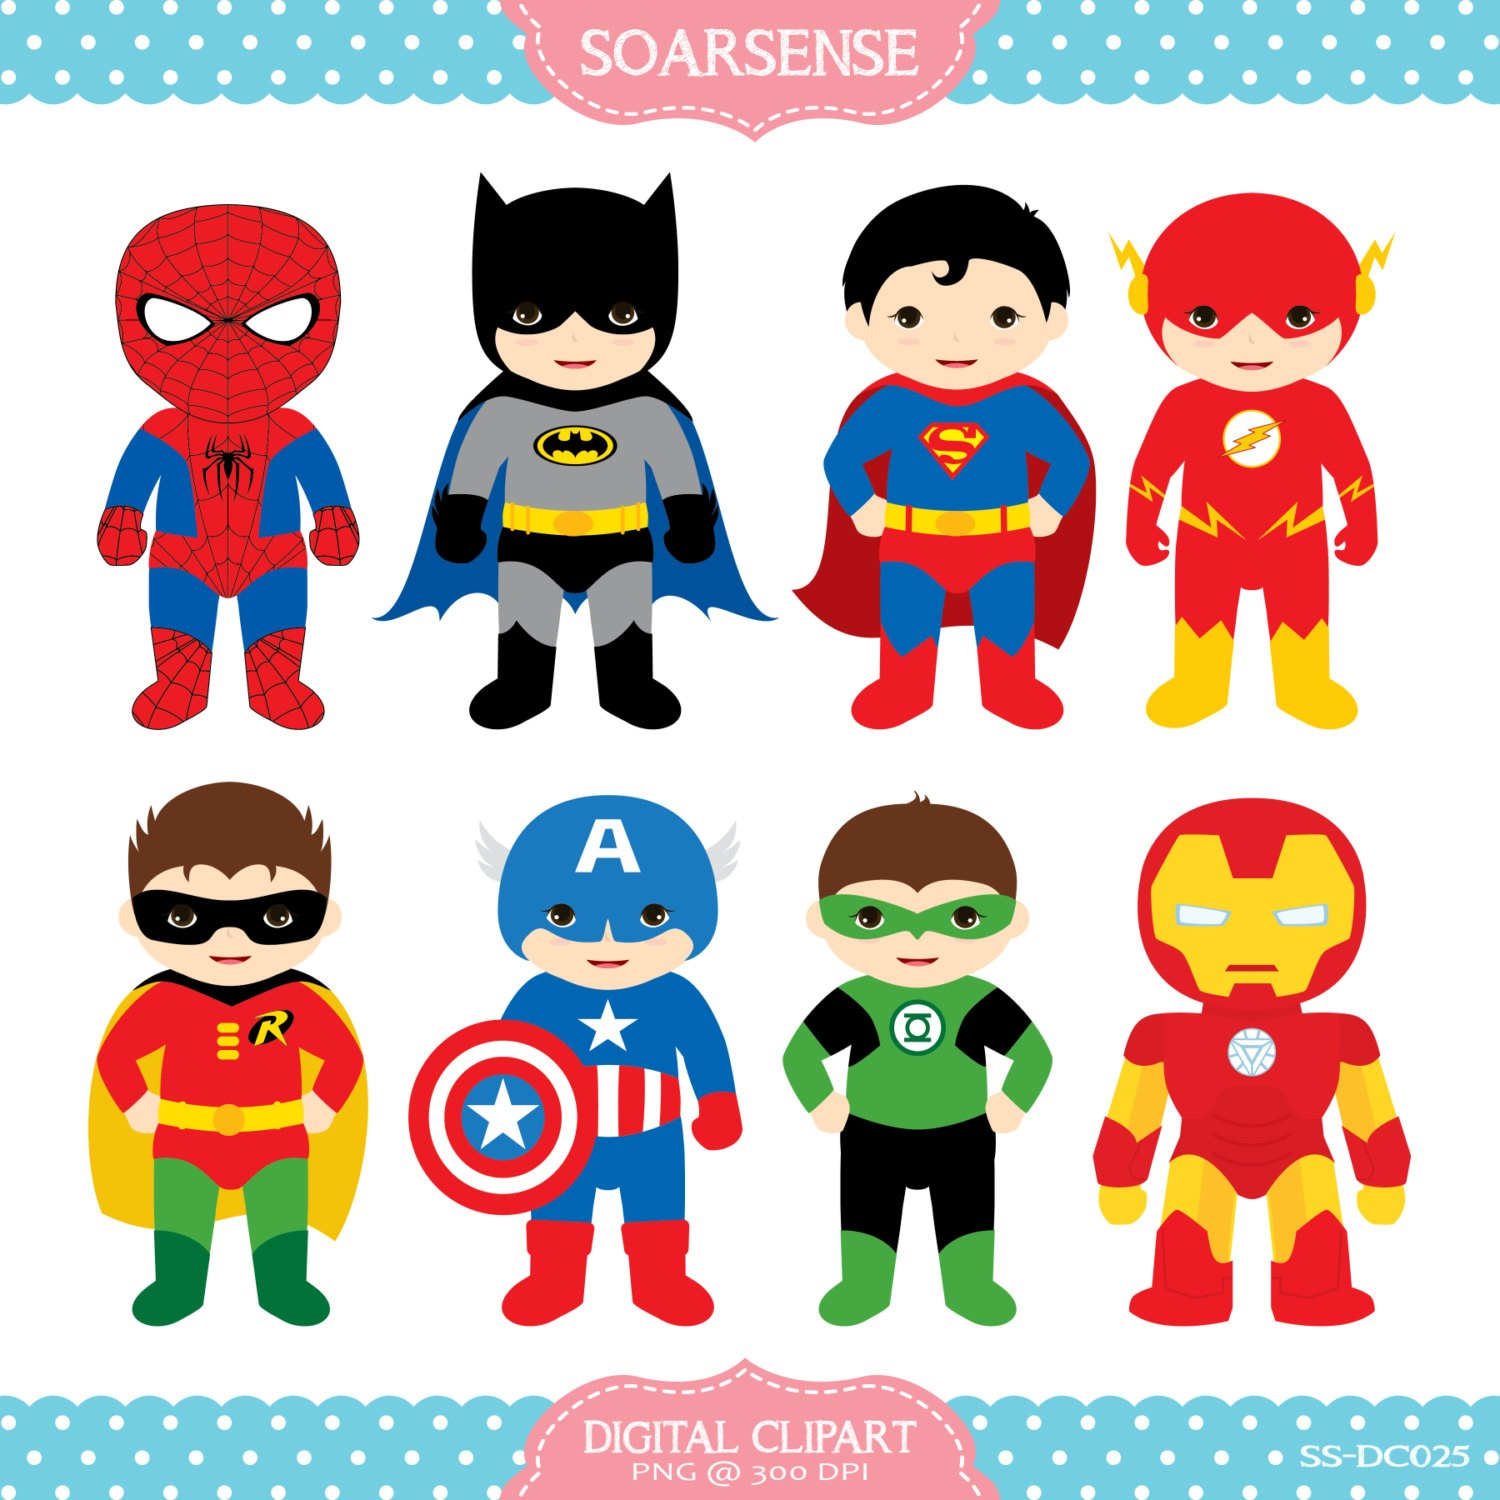 Advengeres clipart image transparent library Free Avengers Cliparts, Download Free Clip Art, Free Clip Art on ... image transparent library